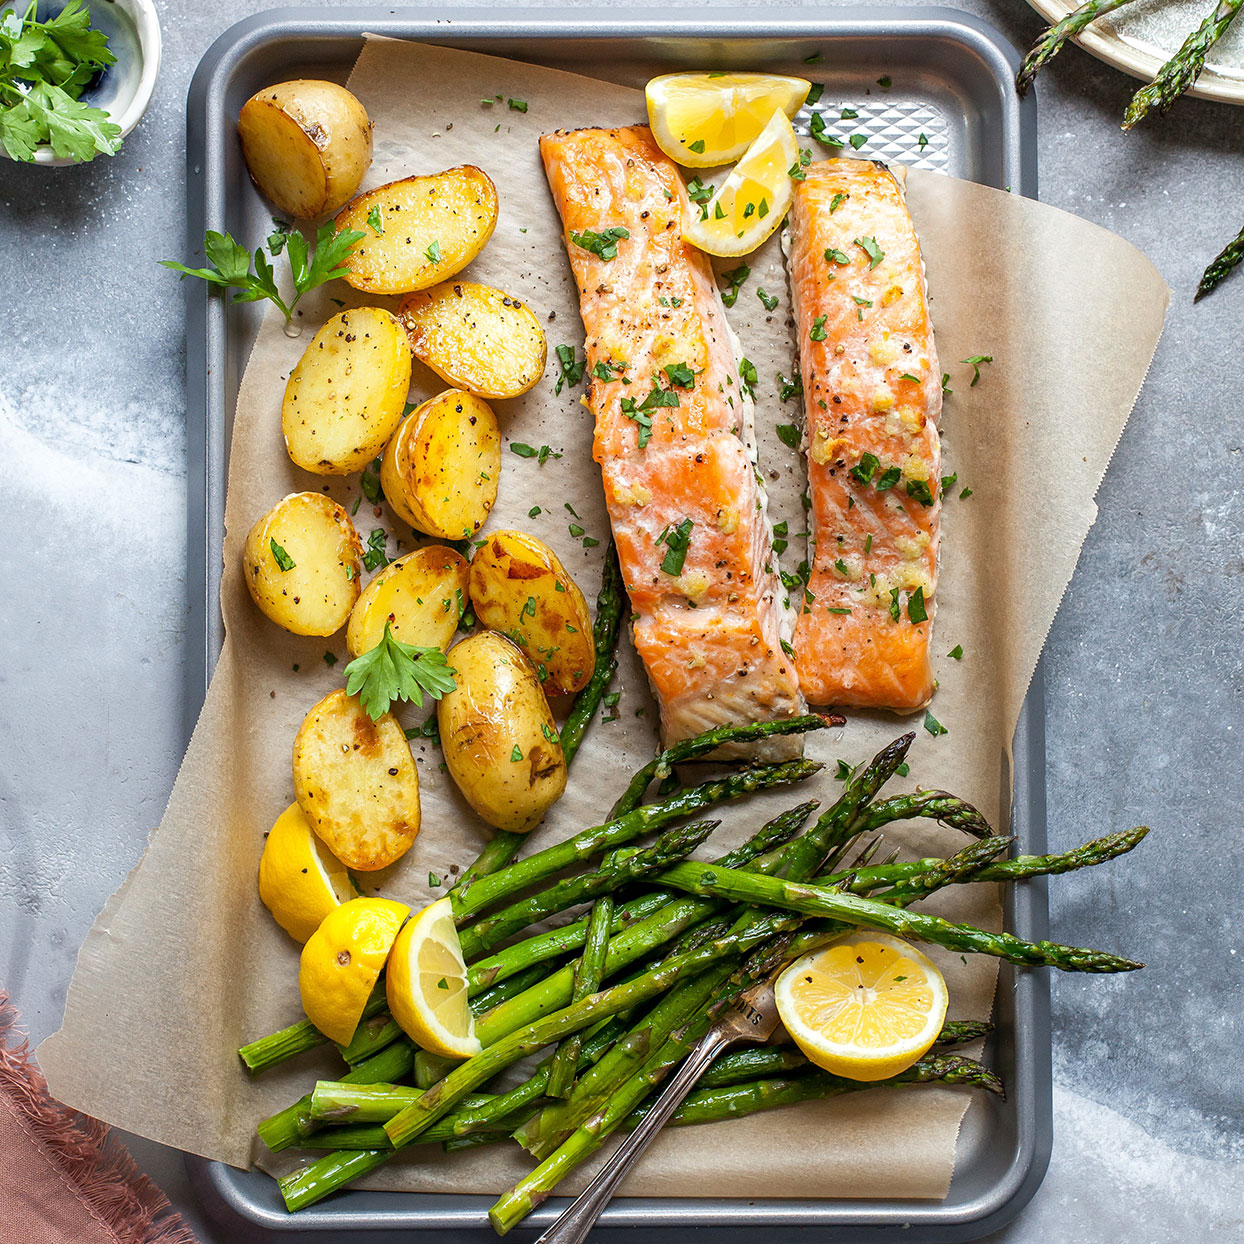 This spring-produce-packed one-pan meal makes a healthy and satisfying weeknight dinner. Melted garlic butter coats the salmon and vegetables, adding depth of flavor and richness to the dish. Source: EatingWell.com, May 2020